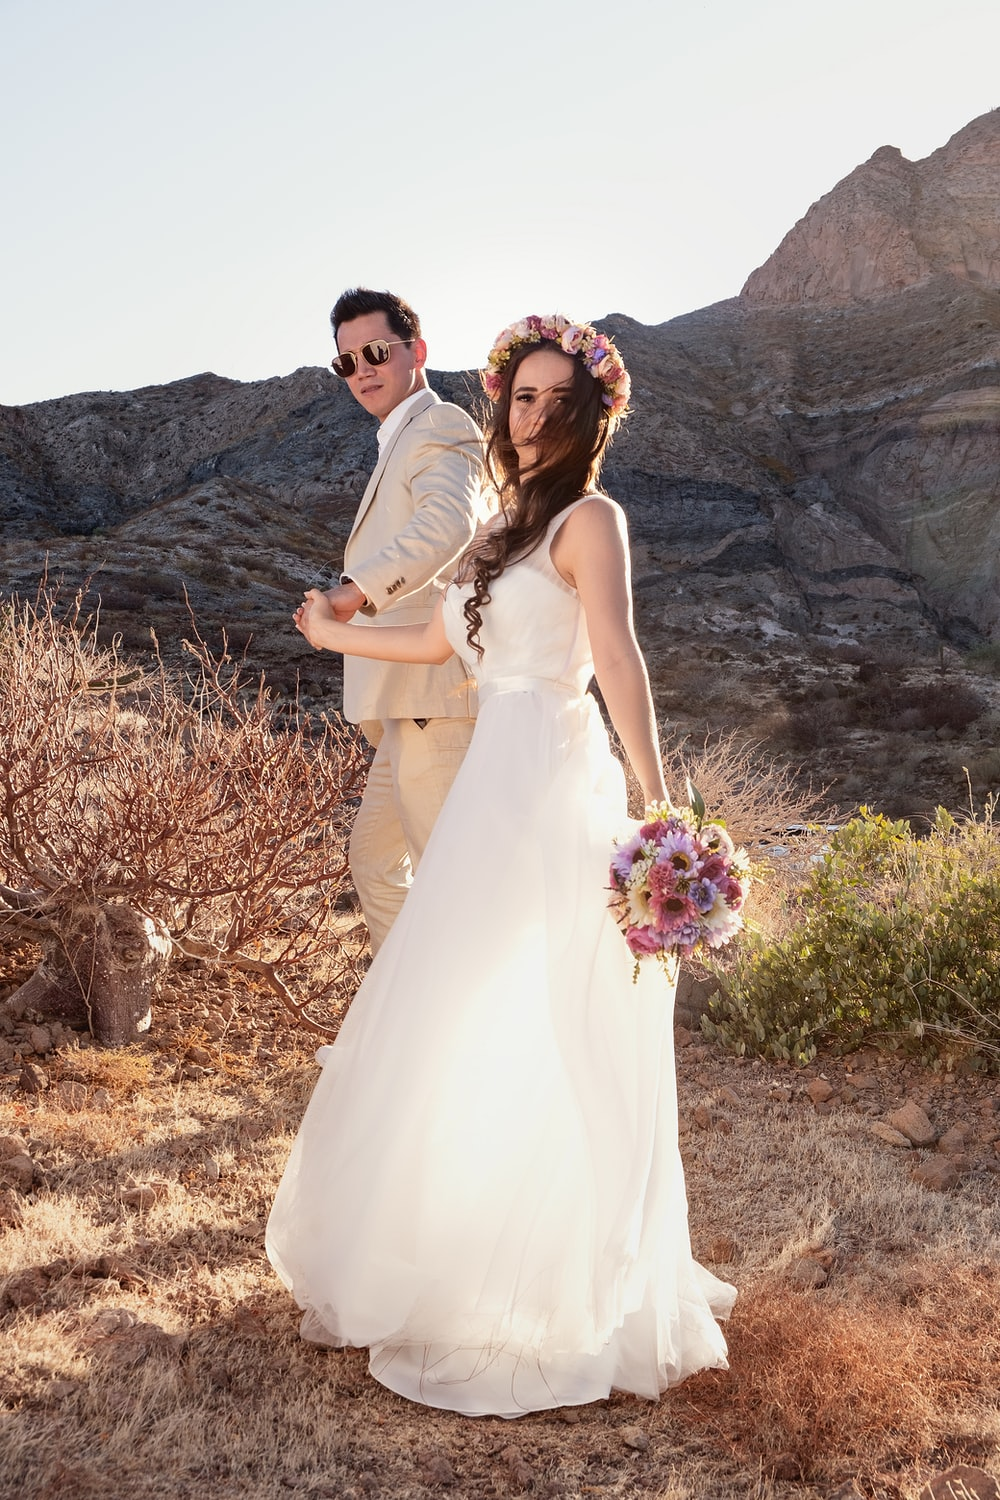 man and woman in wedding dress standing on brown grass field during daytime